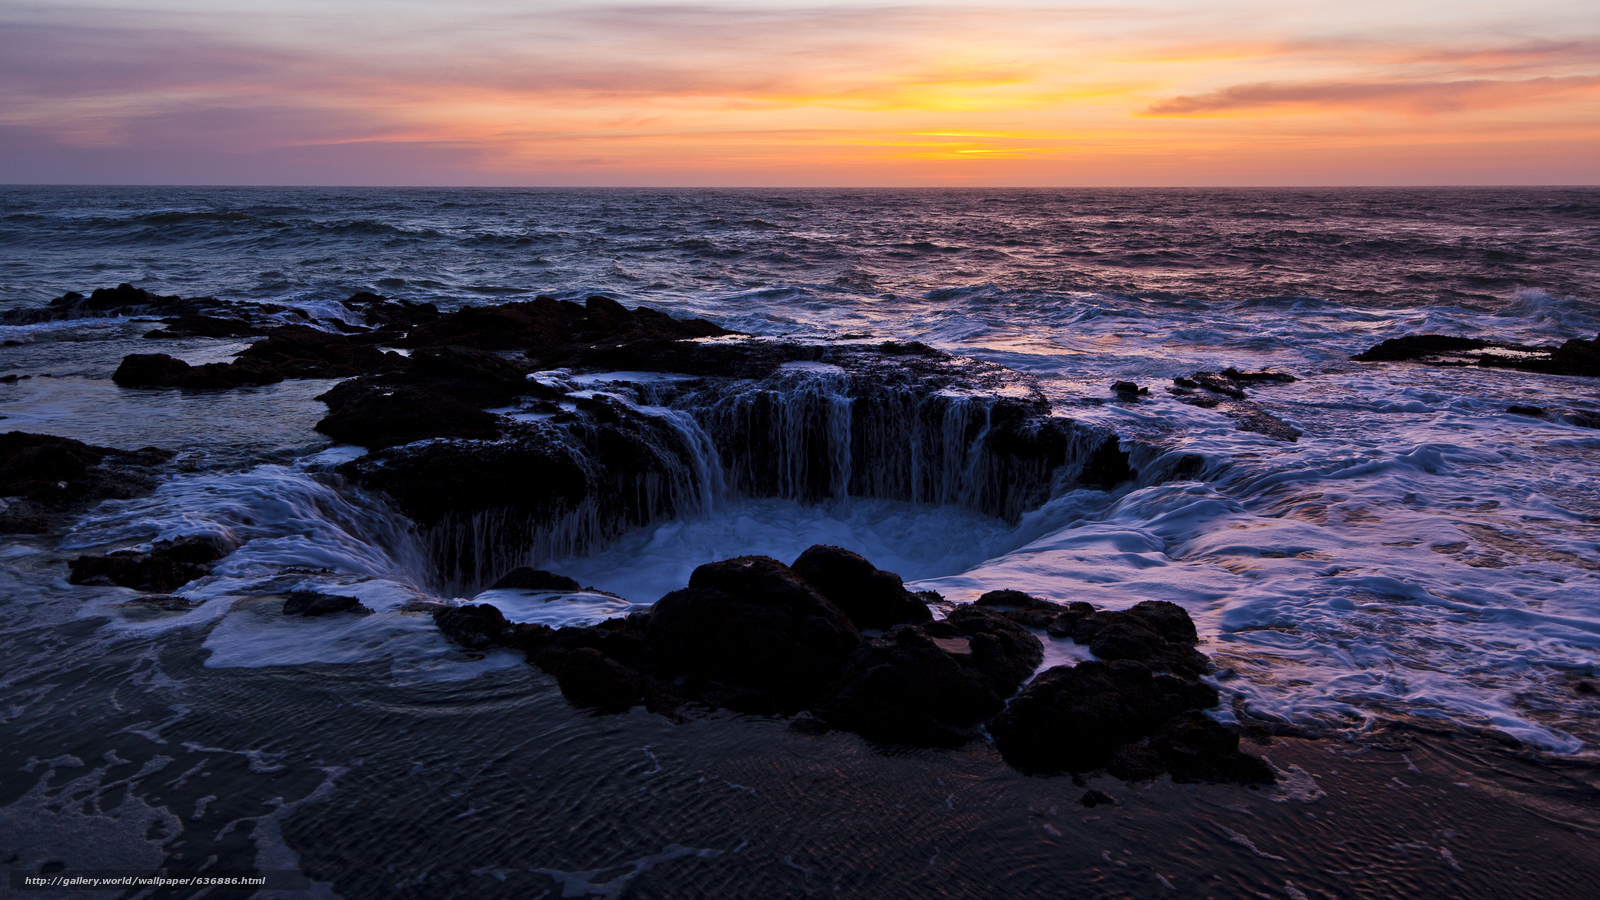 Download wallpaper Thor's Well,  sunset,  Cape Perpetua,  Oregon free desktop wallpaper in the resolution 7200x4050 — picture №636886